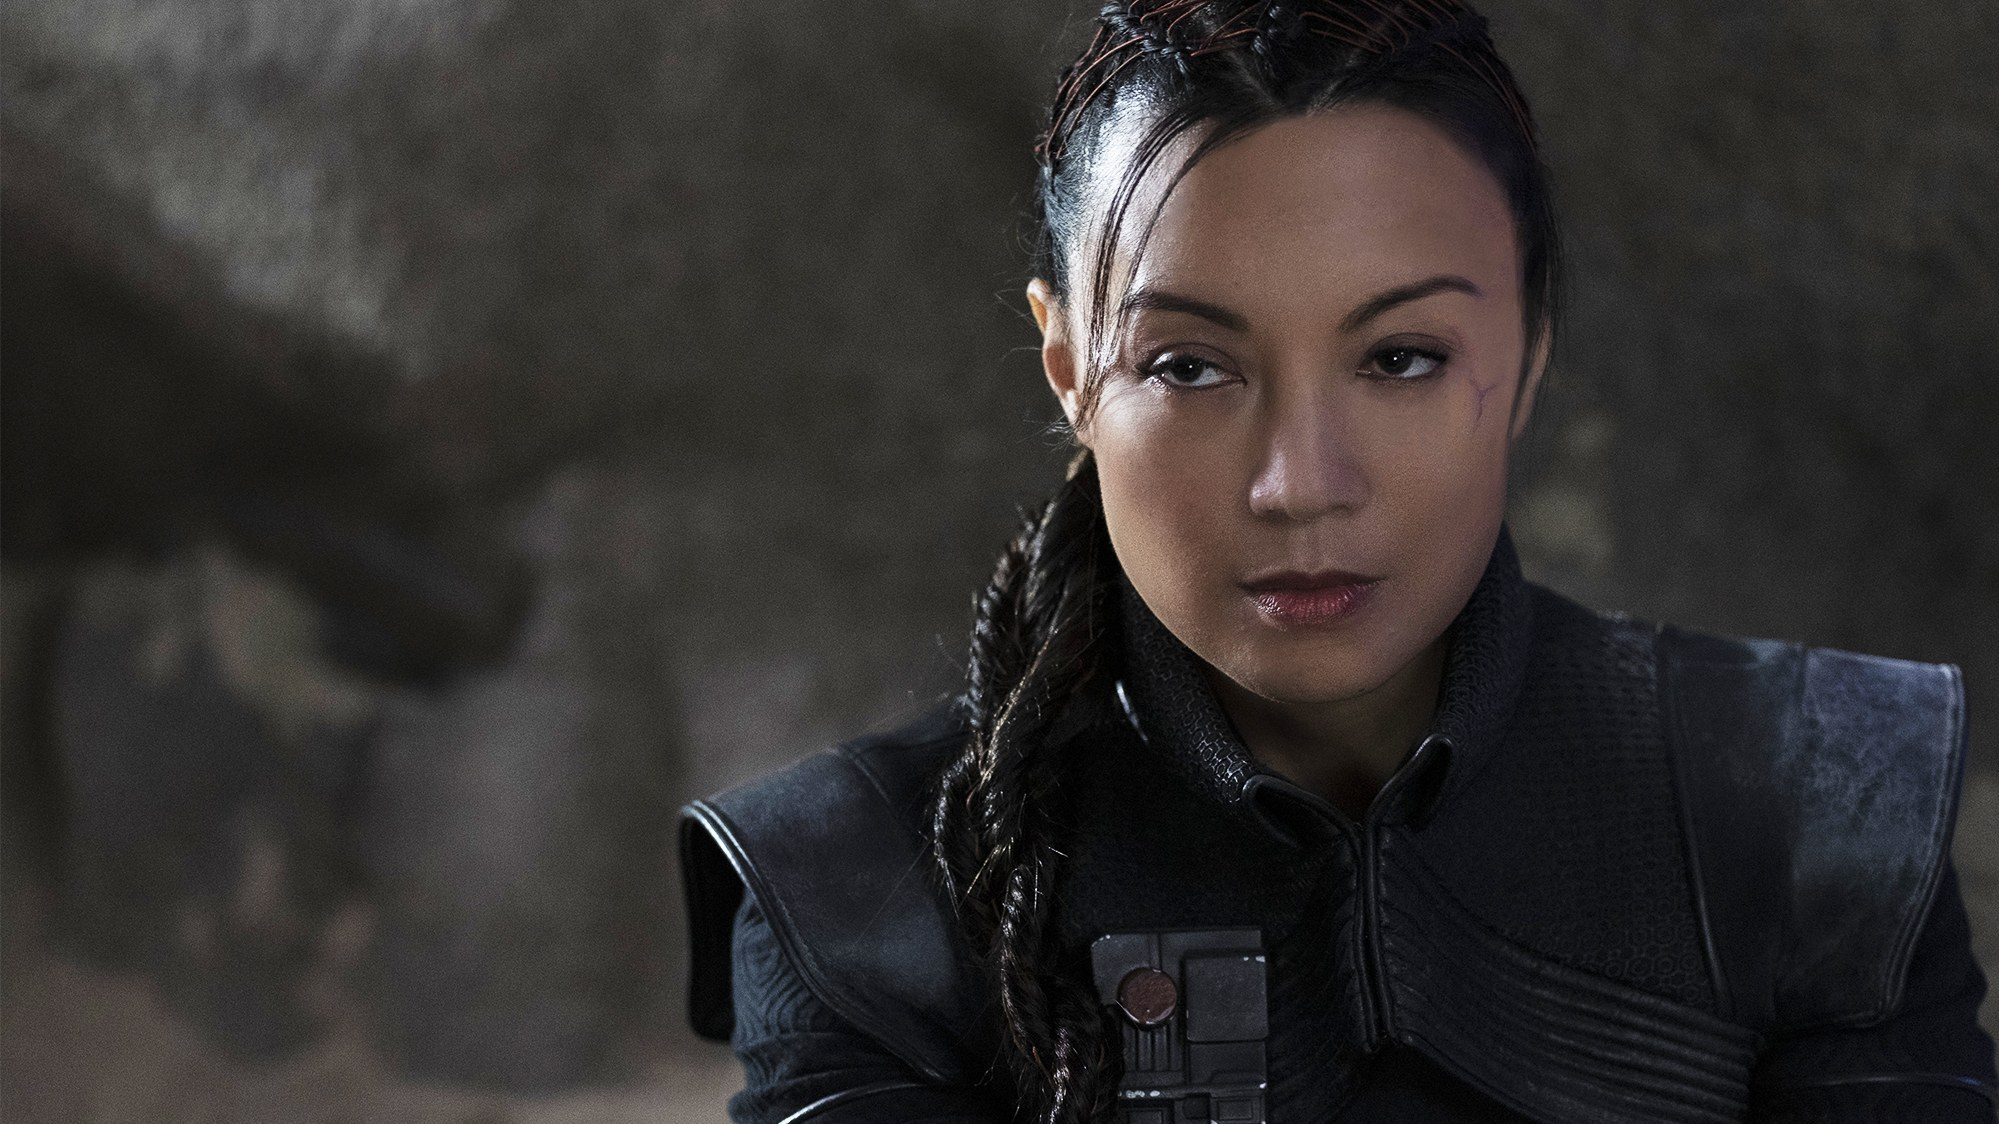 The Mandalorian: Ming-Na Wen, de Agents of SHIELD, será assassina na série (teasers)